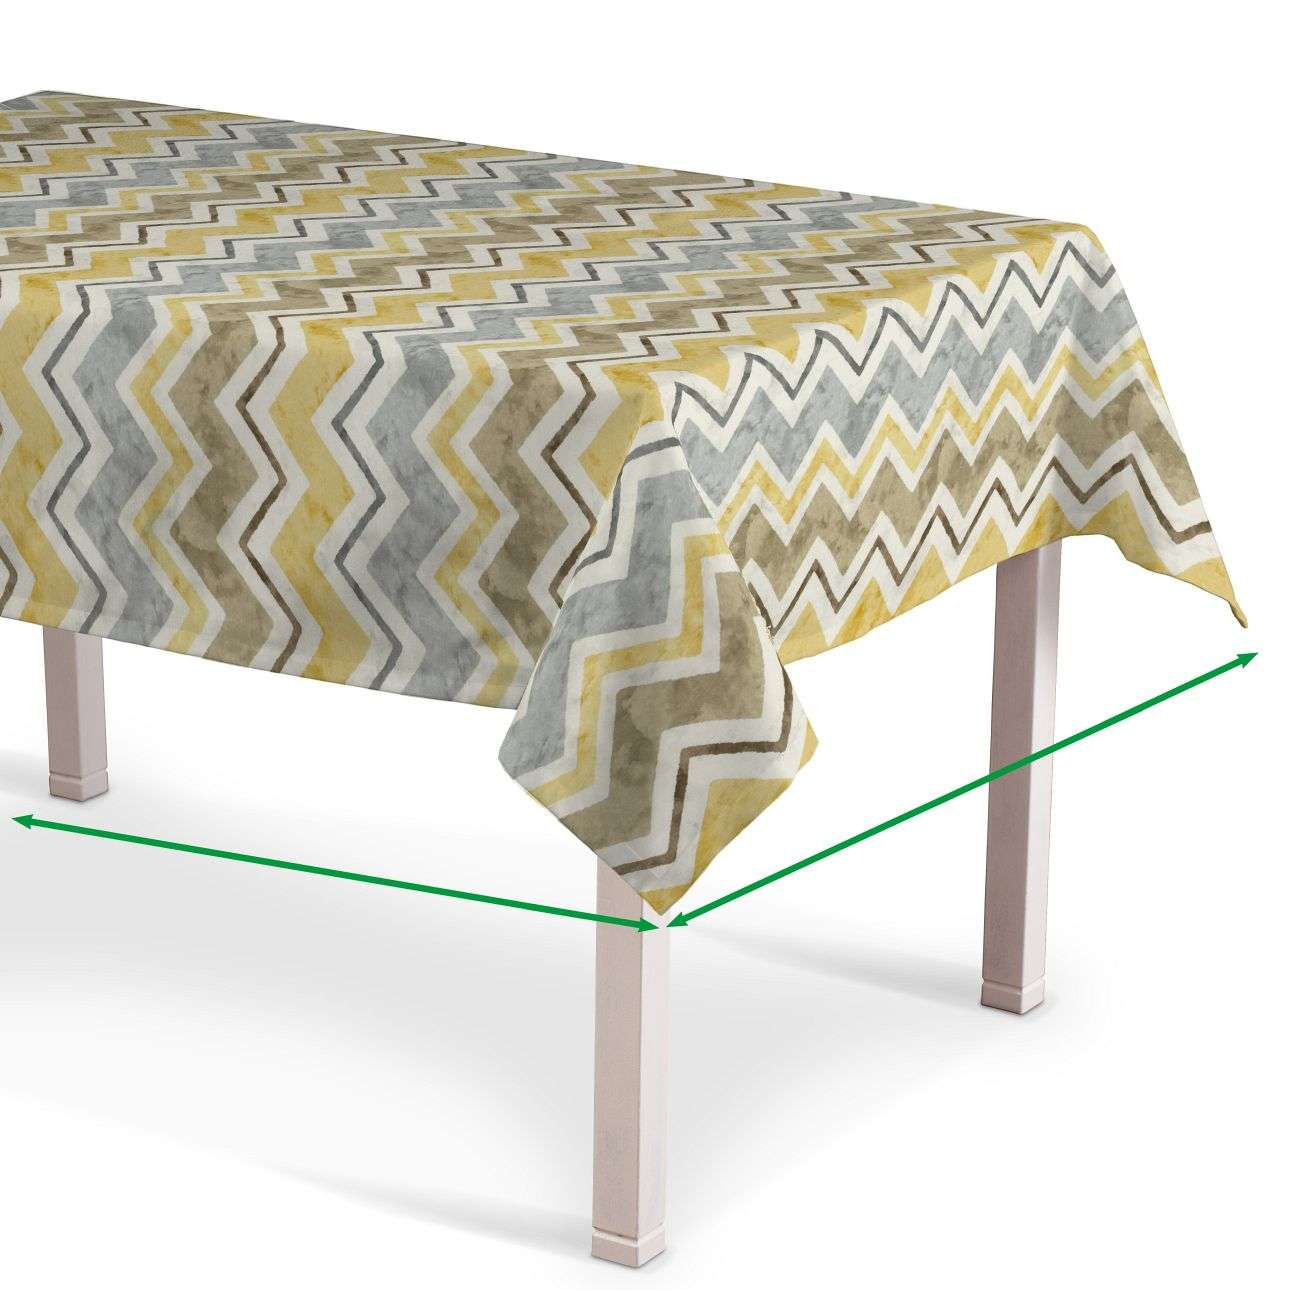 Rectangular tablecloth in collection Acapulco, fabric: 141-39